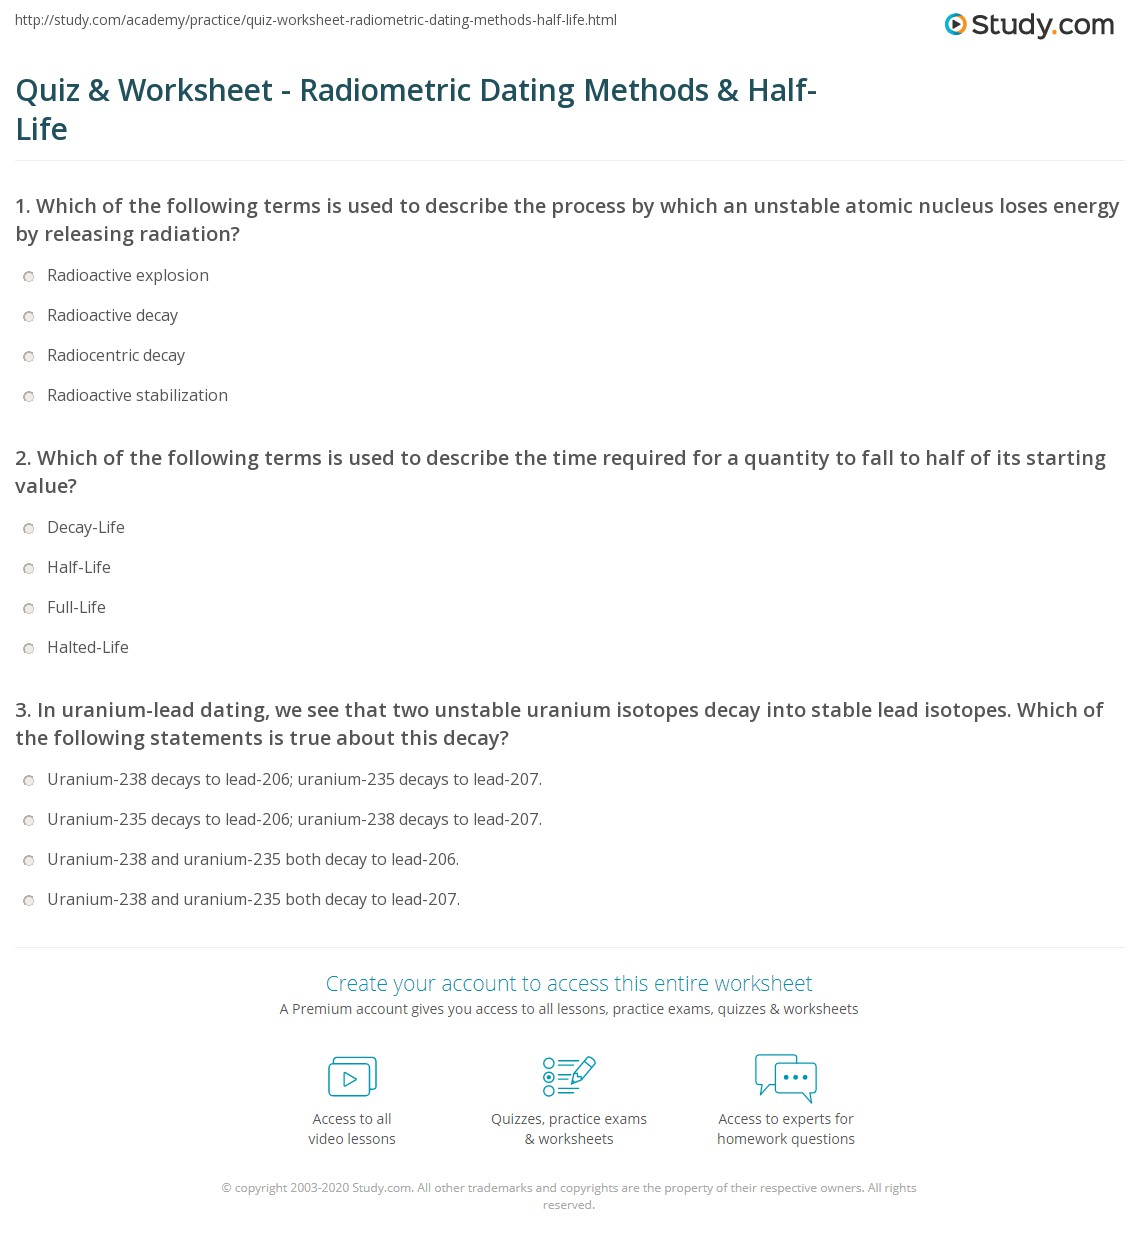 Quiz & Worksheet - Radiometric Dating Methods & Half-Life  Study.com